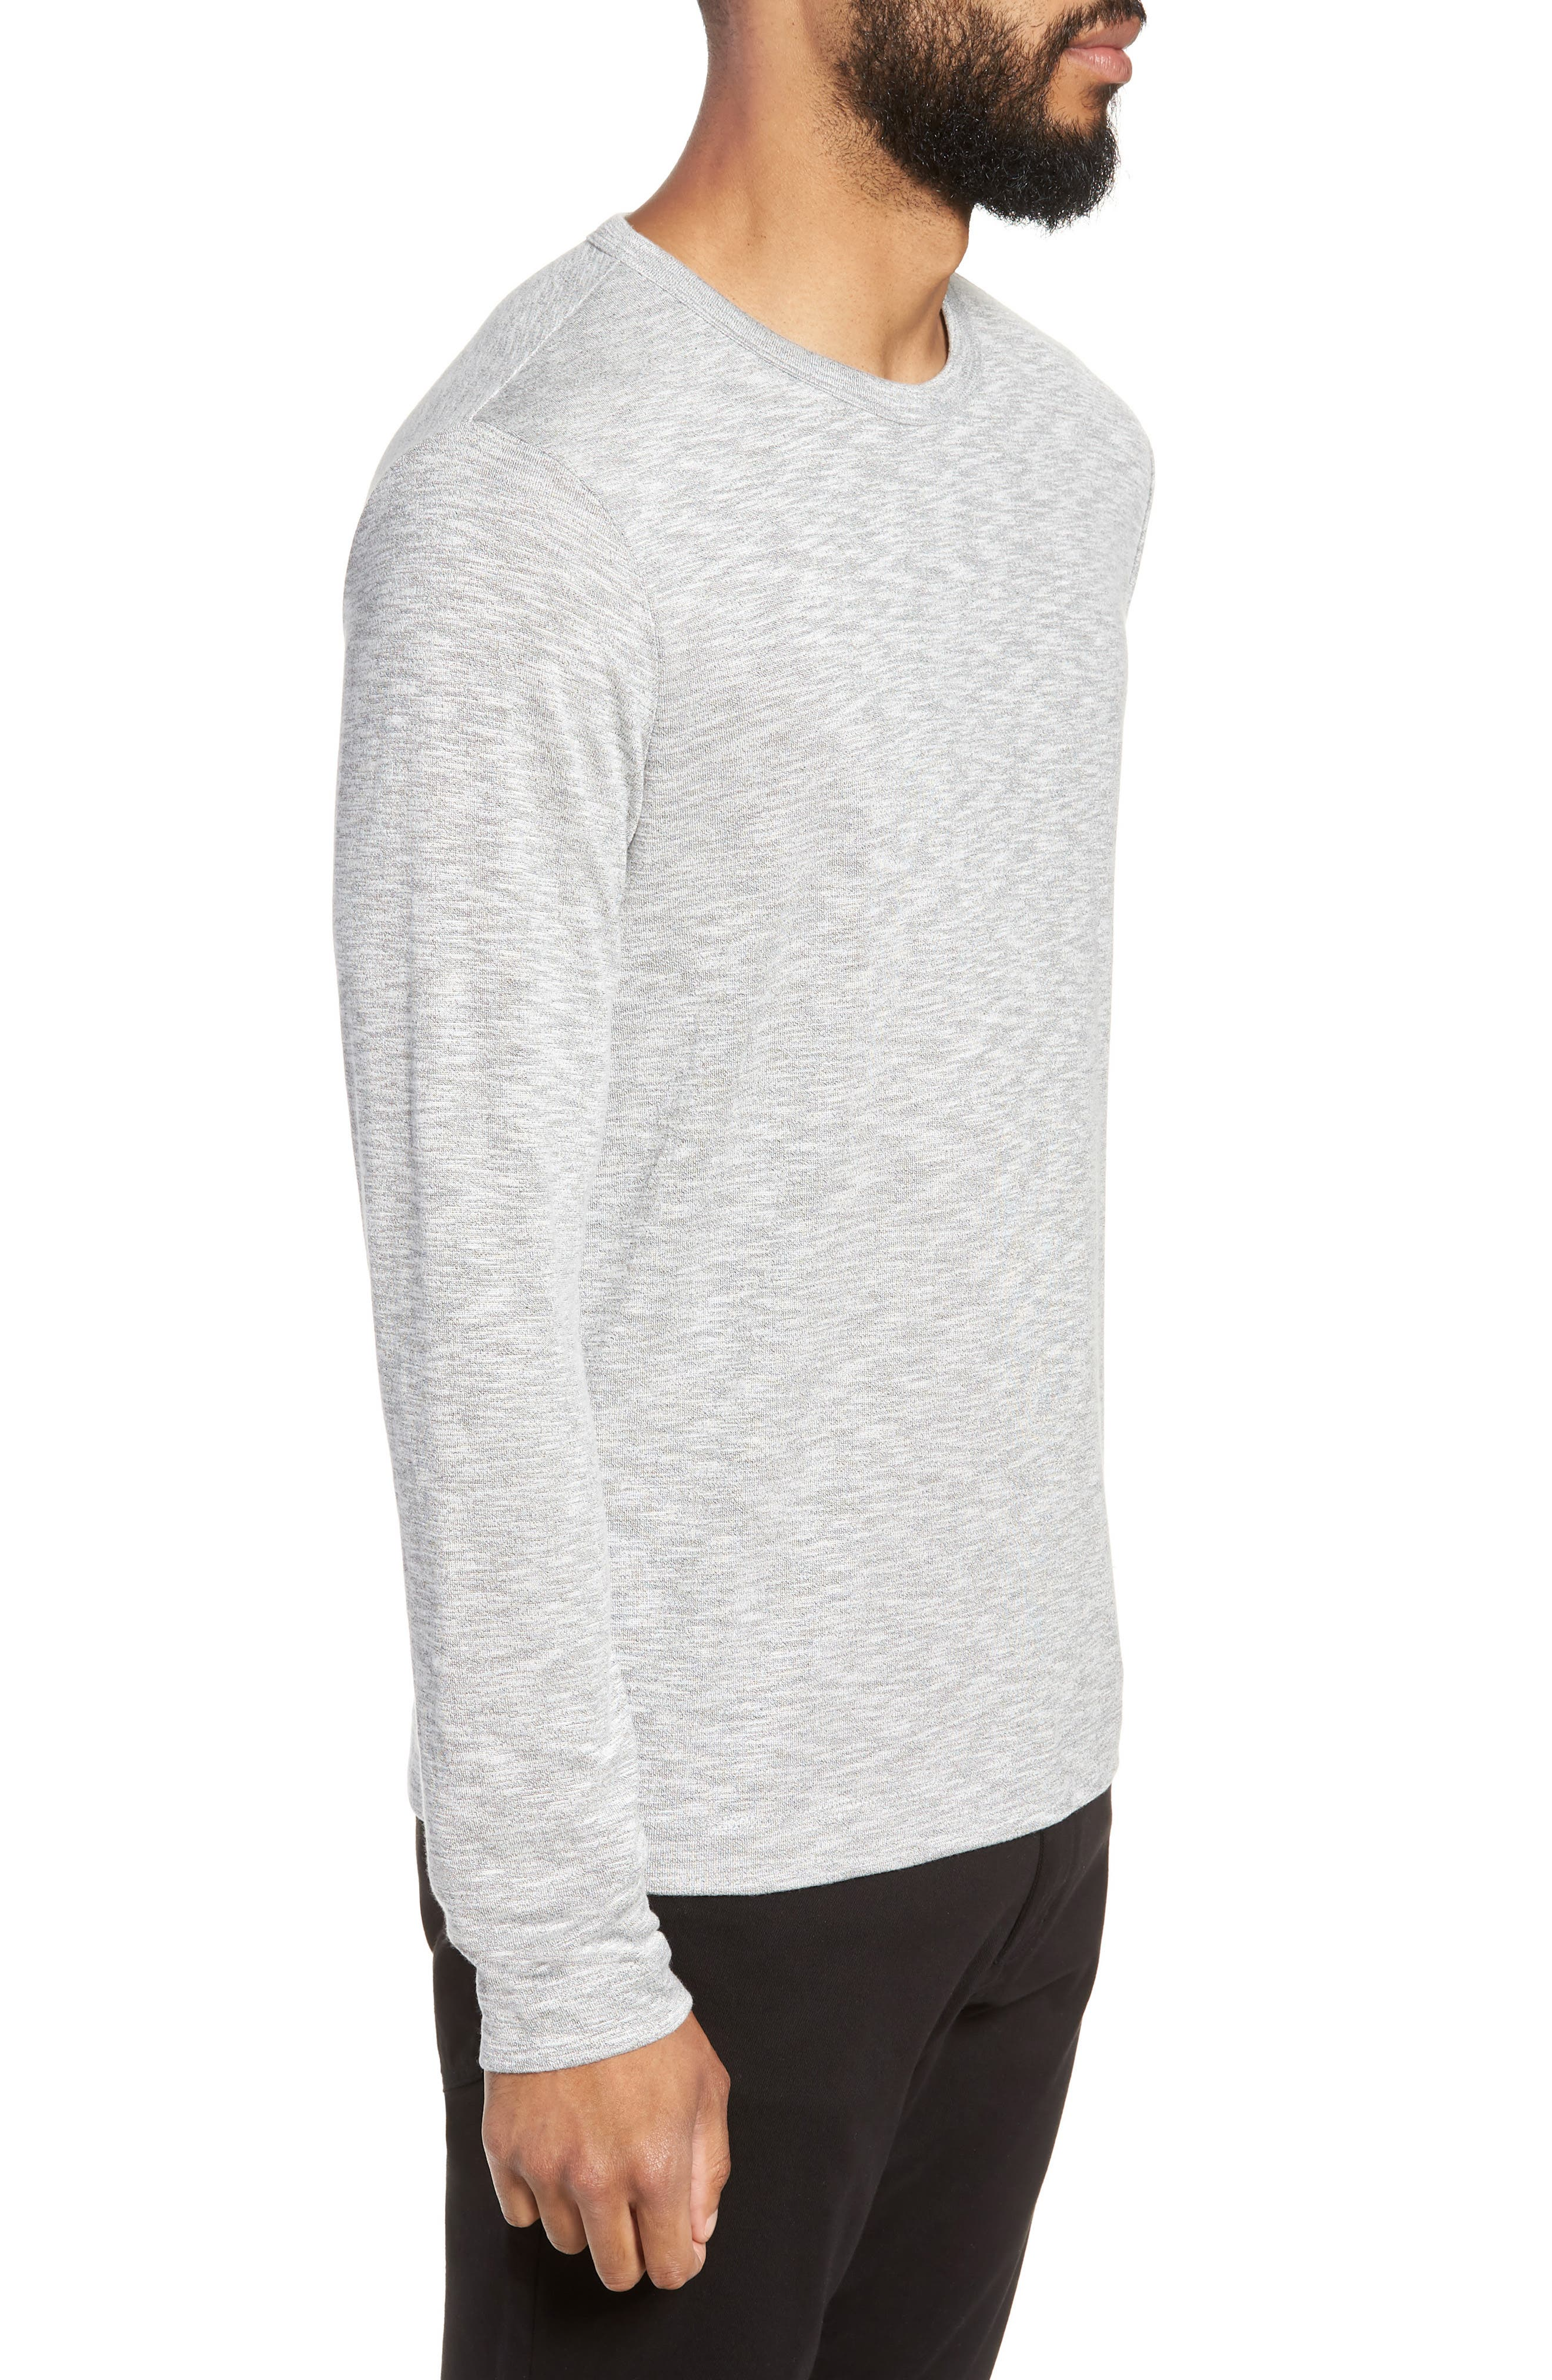 Gaskell Regular Fit Long Sleeve T-Shirt,                             Alternate thumbnail 3, color,                             GREY MULTI